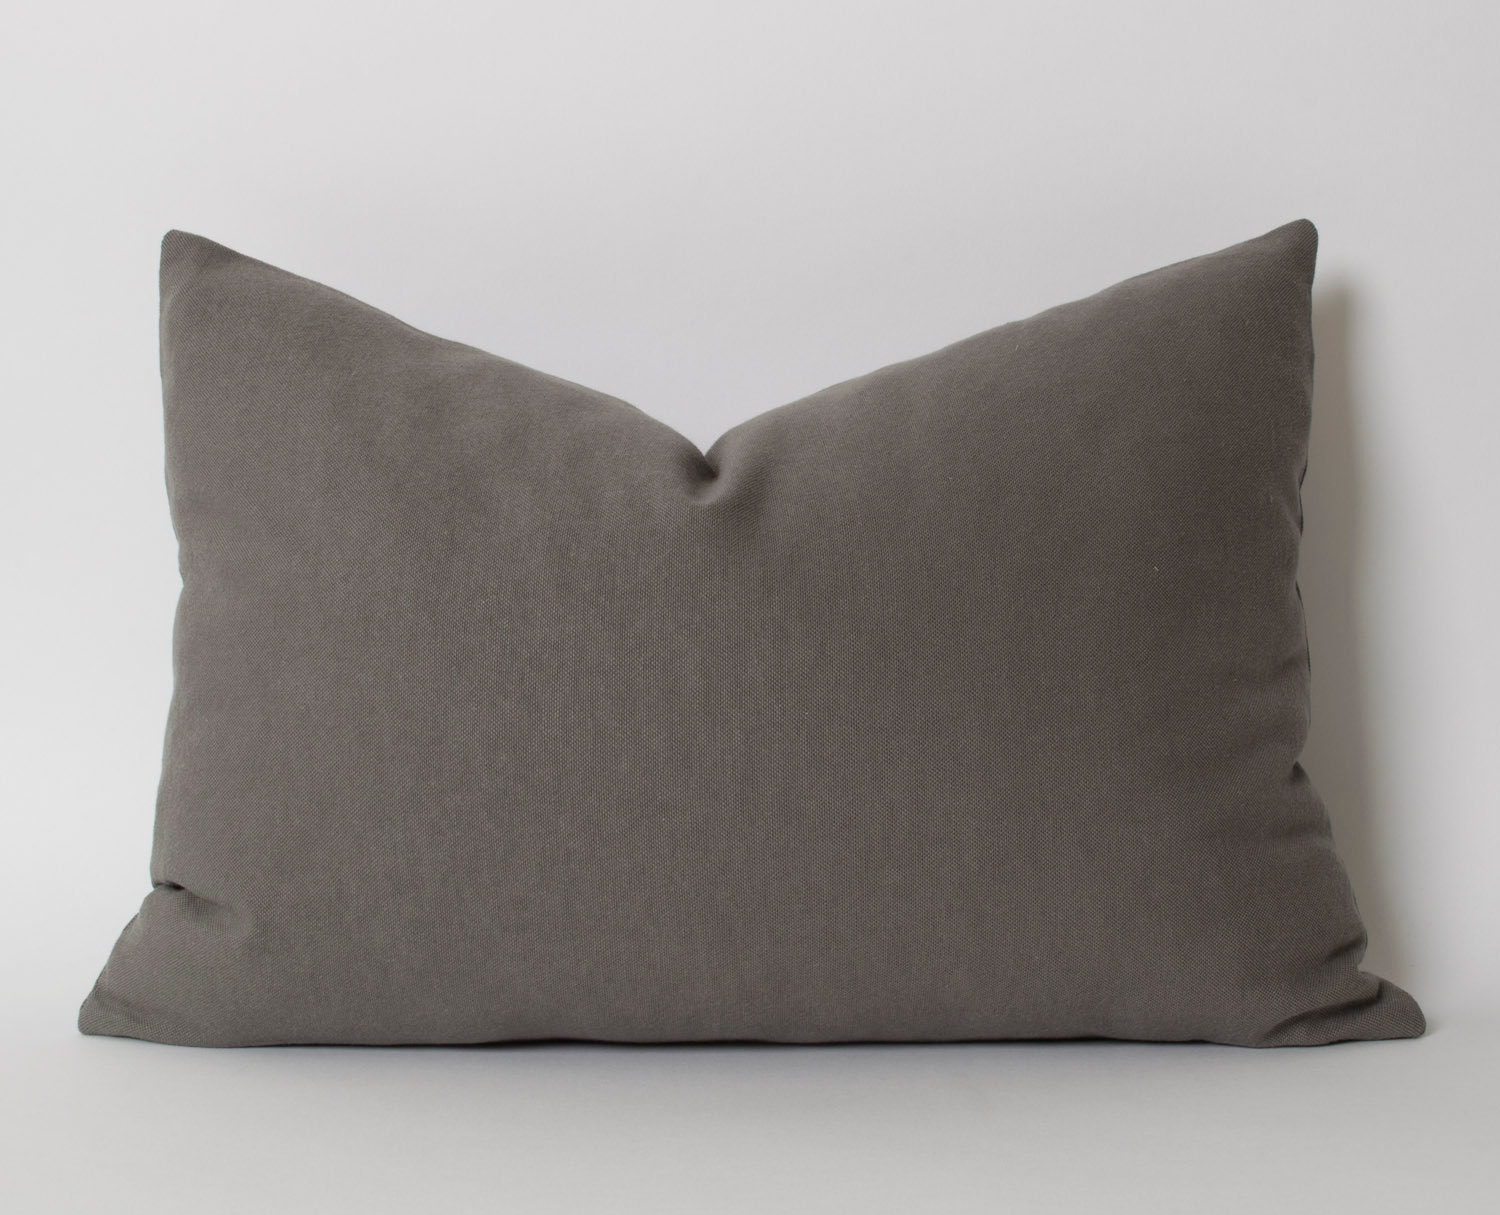 Gray Pillows Decorative Throw Pillow 12x18 Inch Dark Gray